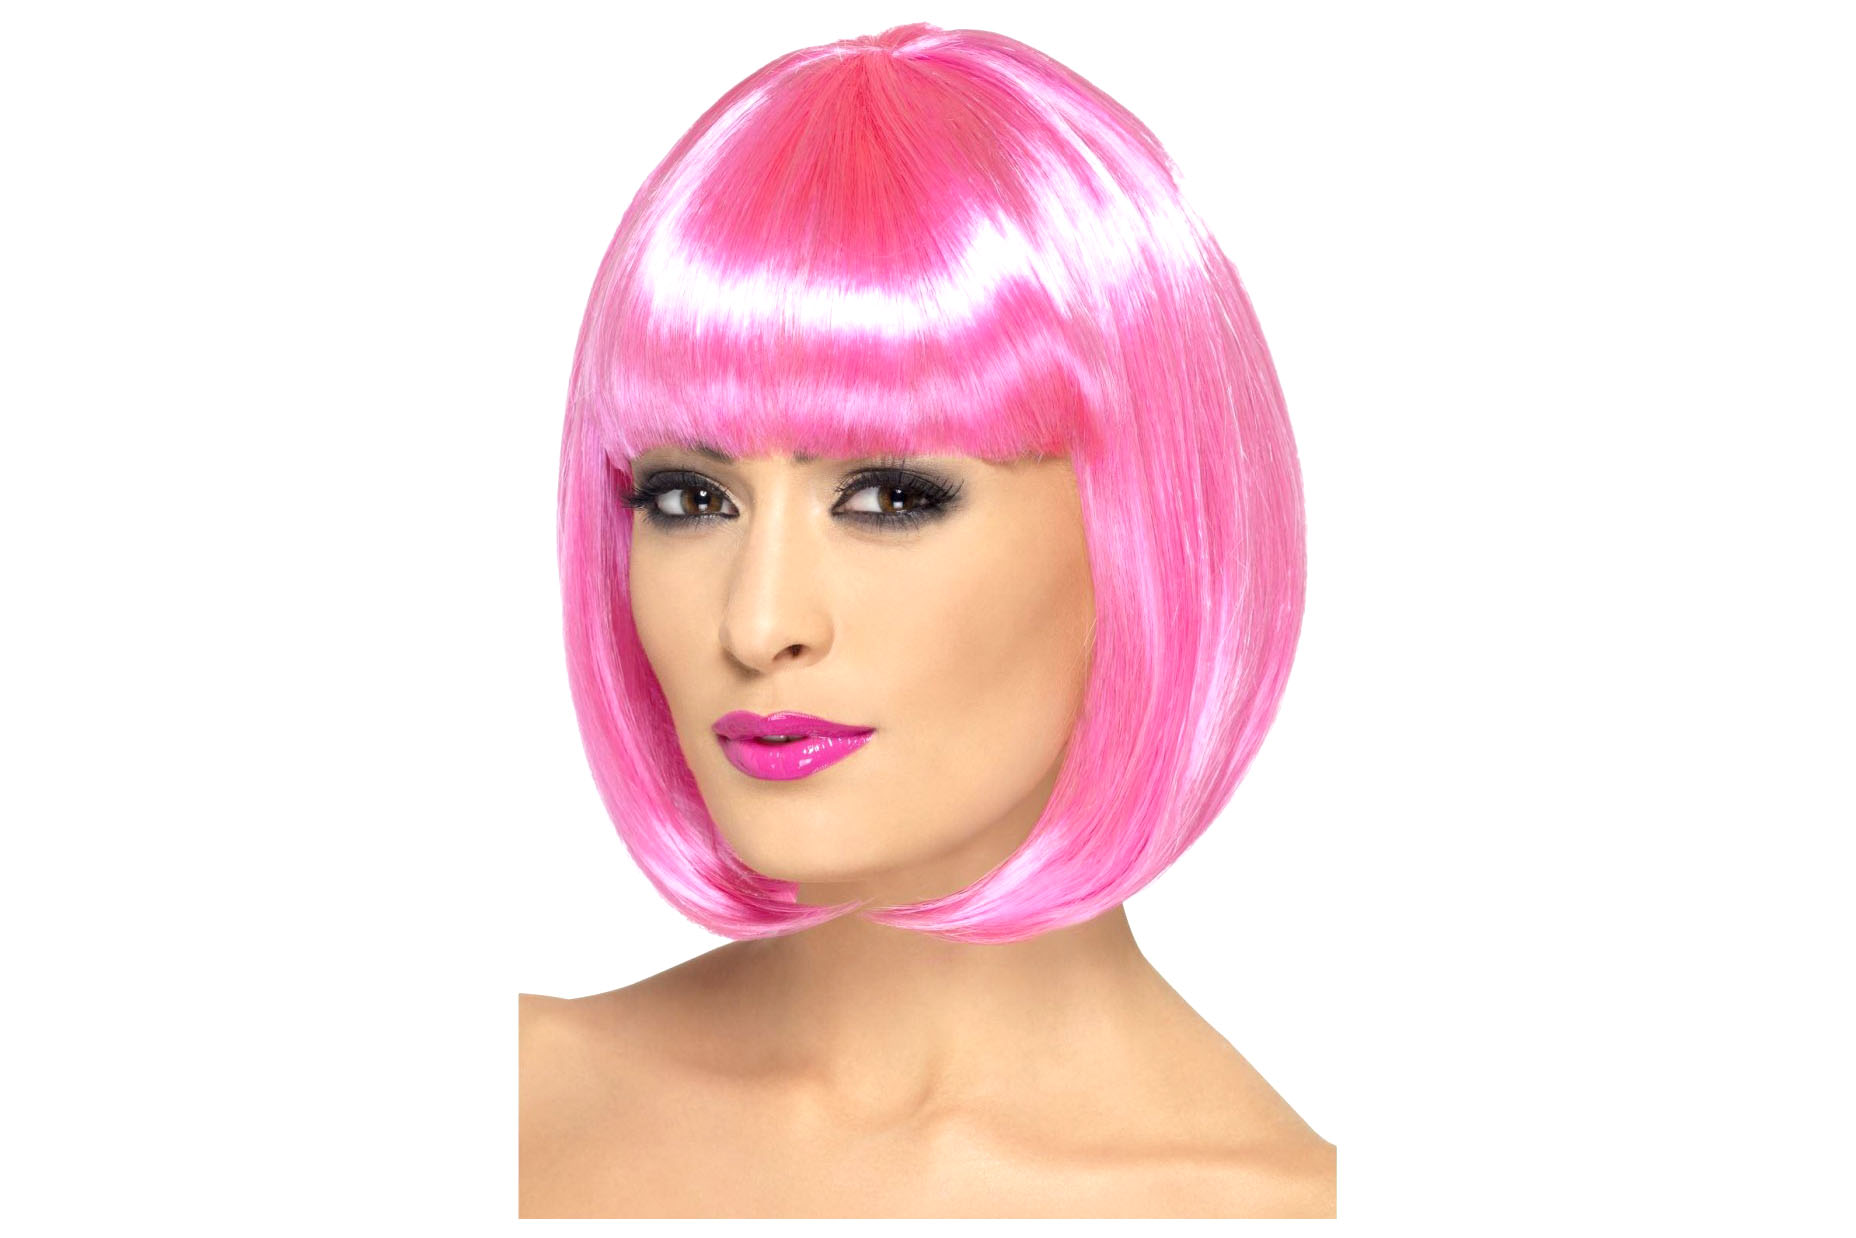 Party Wig, 7 color options - 4 stars - $13 (Prime)